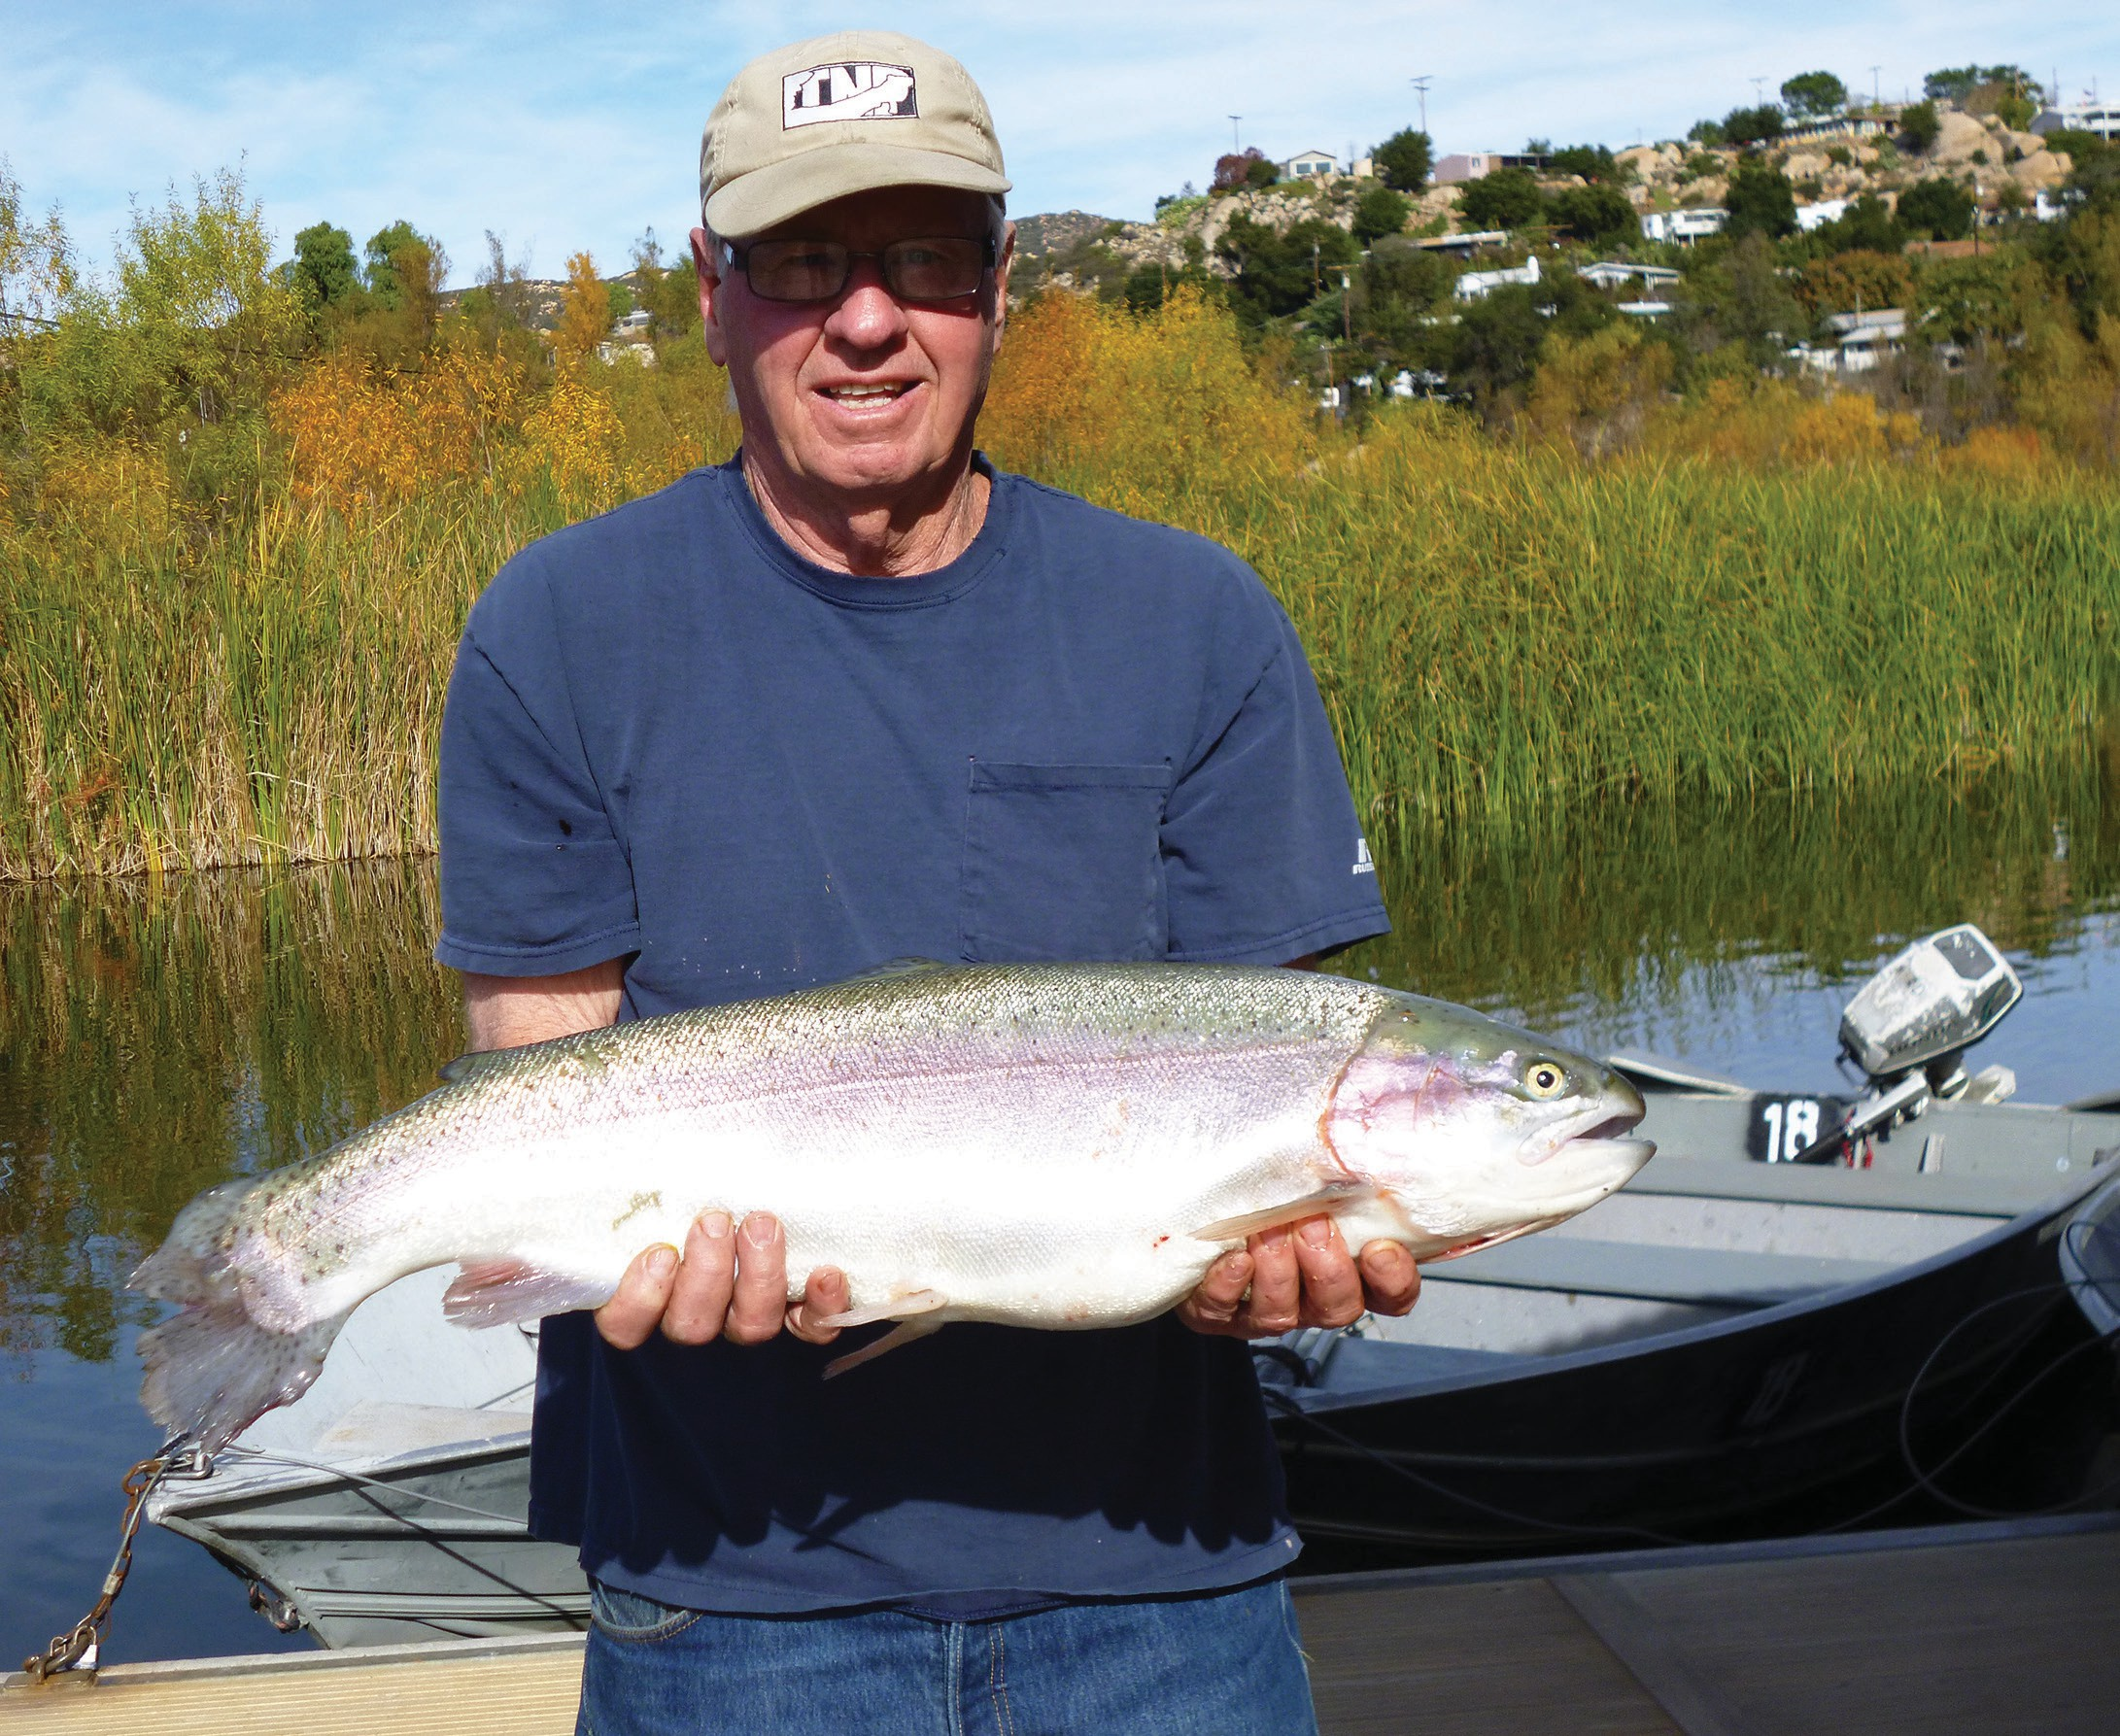 Big fish of the week belonged to David James who caught an 11.10 pound trout using rainbow powerbait on Senior Shoreline.